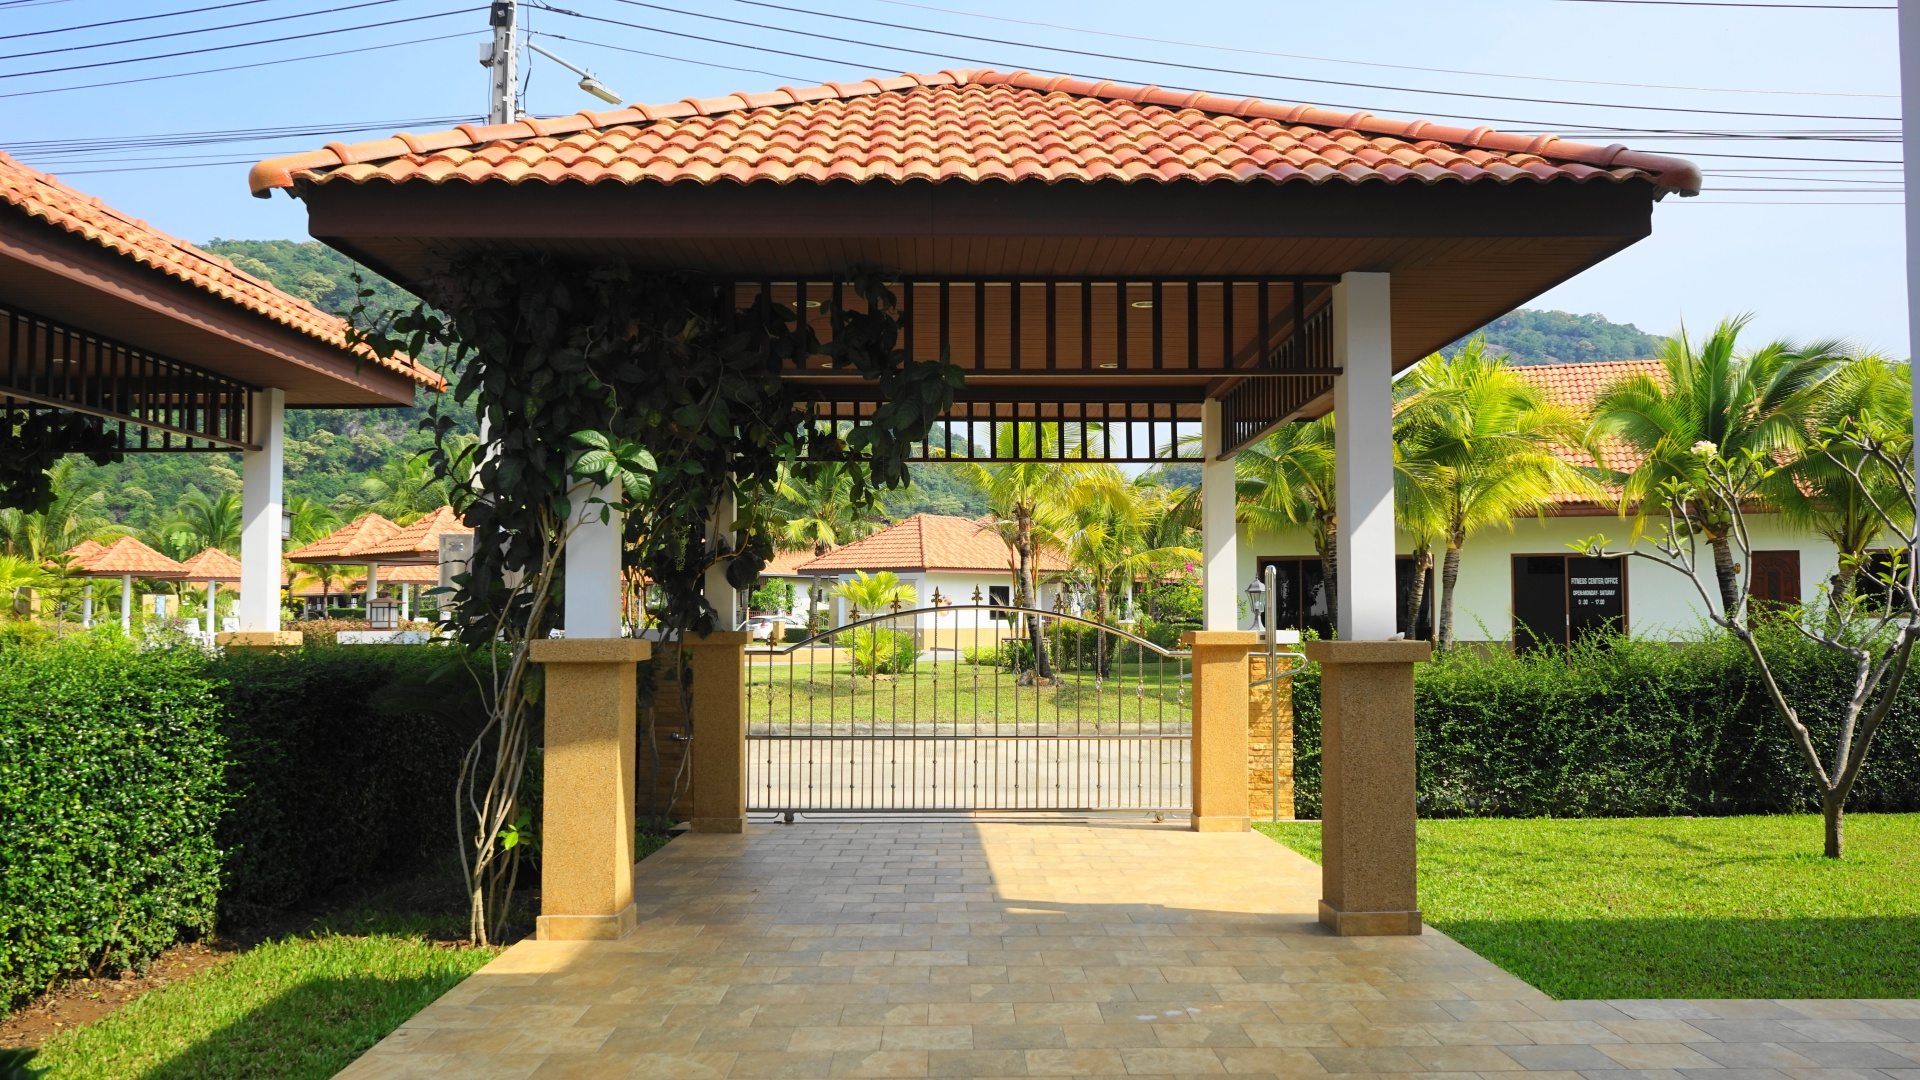 Car Port of Villa Royale F3 in Manora Village, Hua Hin, Thailand